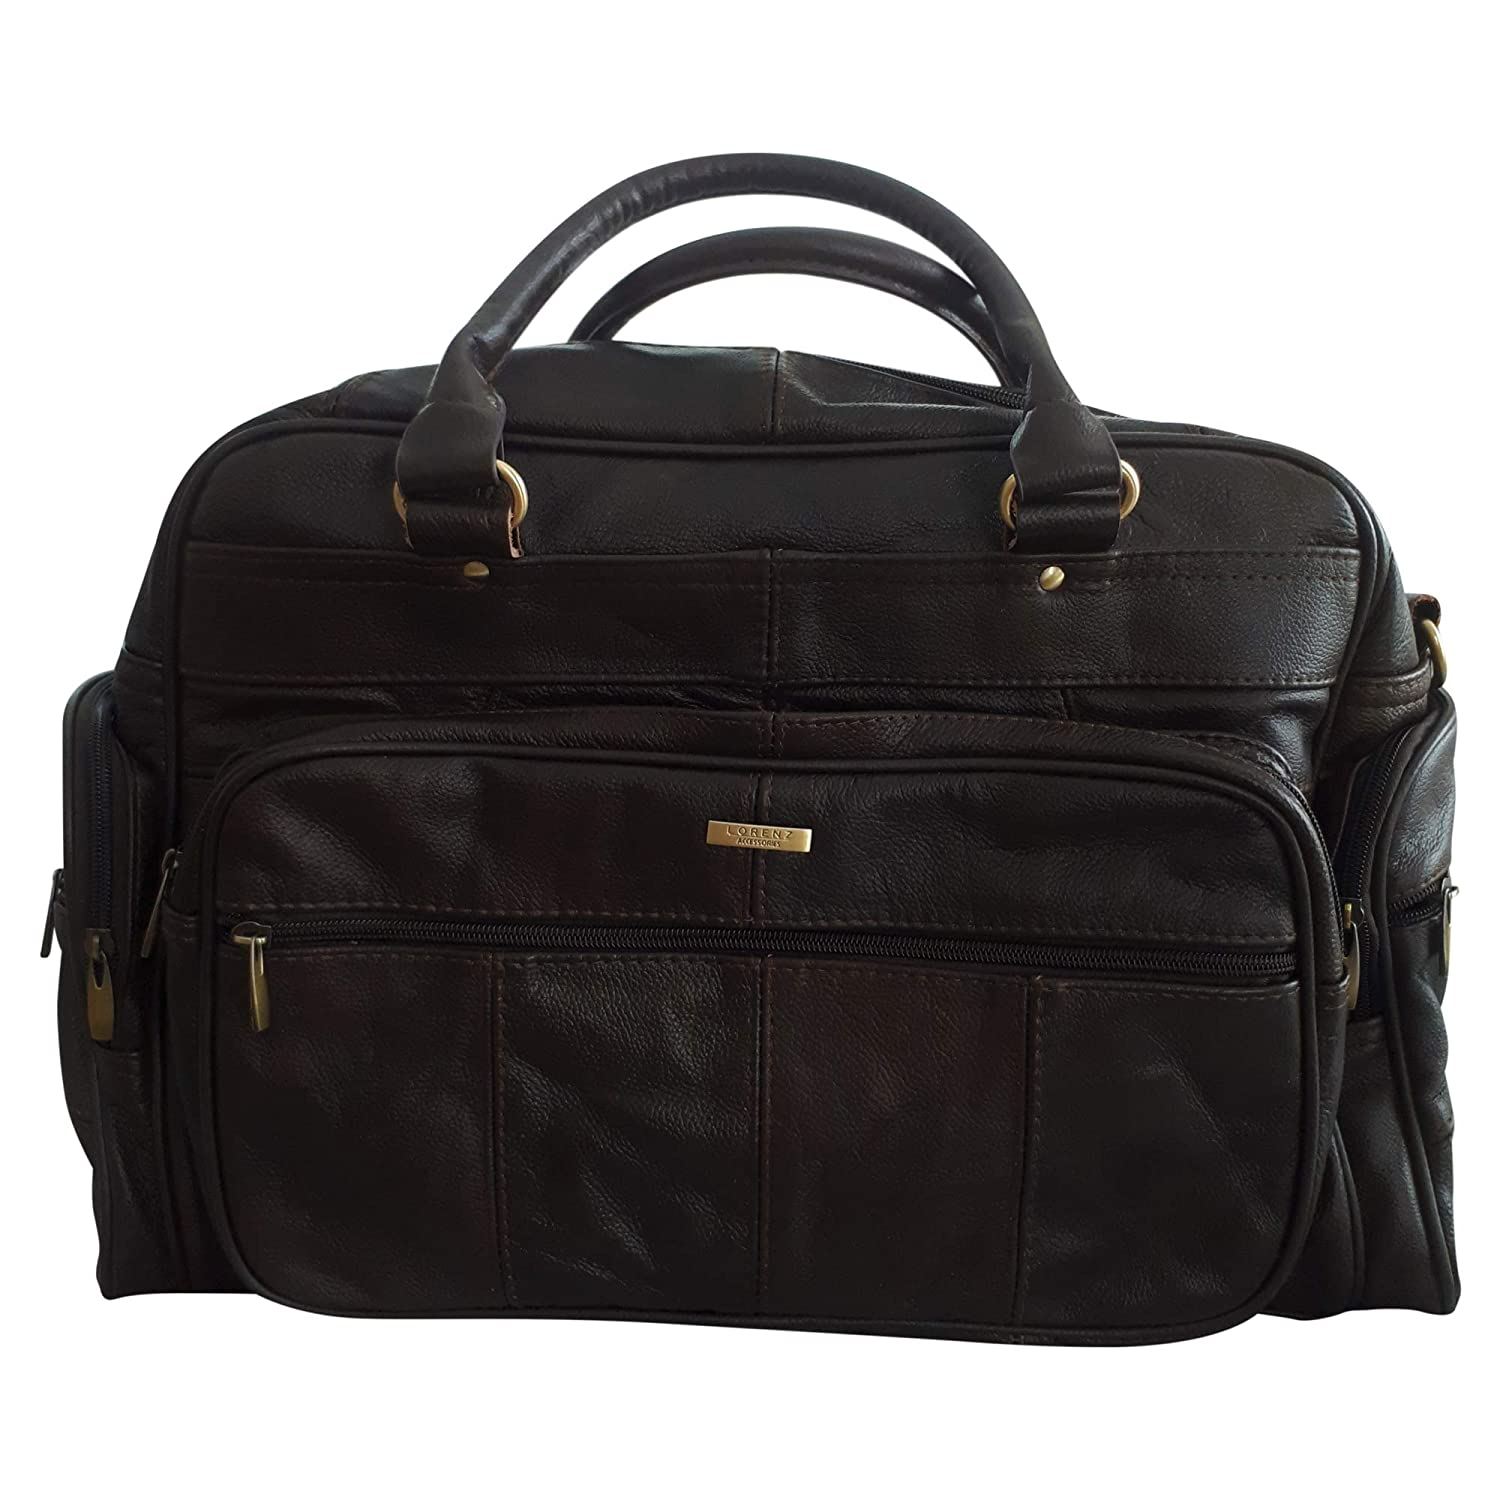 5dc846e3b161 MENS LEATHER HOLDALL LUXURY TRAVEL BAG GYM SPORTS BAG LADIES FLIGHT BAG  CABIN BAG WEEKEND BAG IN BROWN  Amazon.co.uk  Luggage